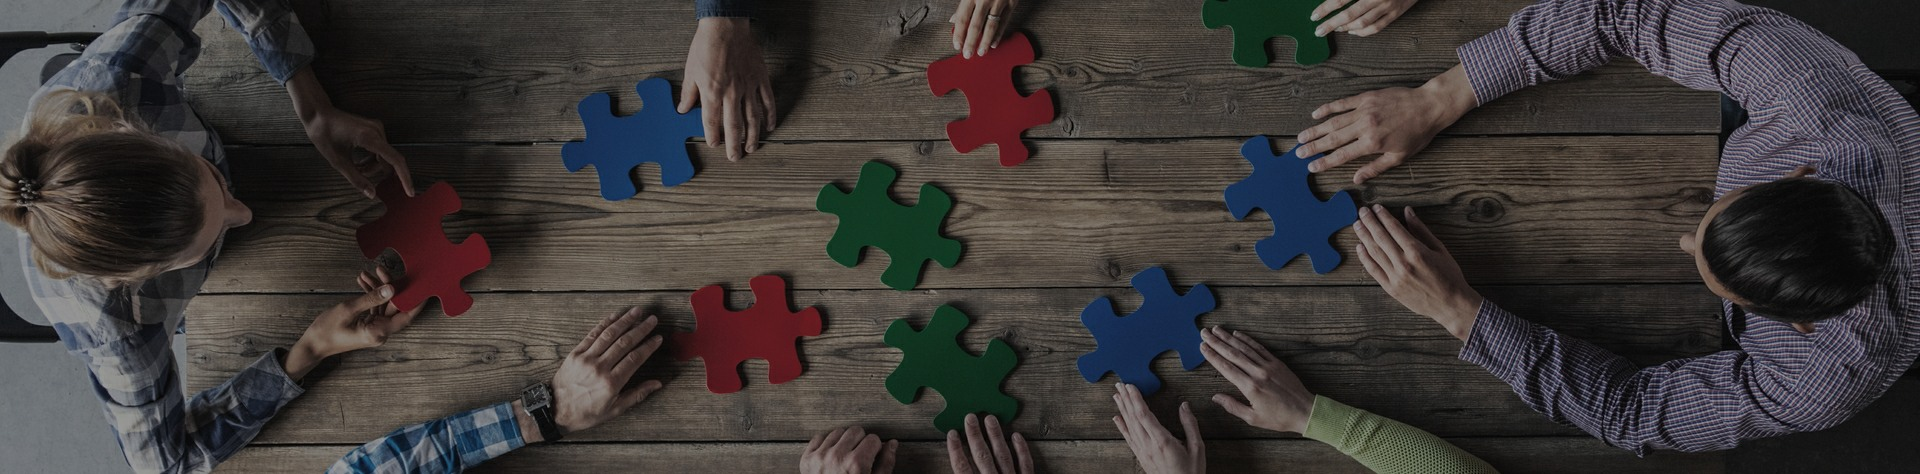 Servant Leadership: The Creative Way to Build Shared Success Through Collaboration and Partnership